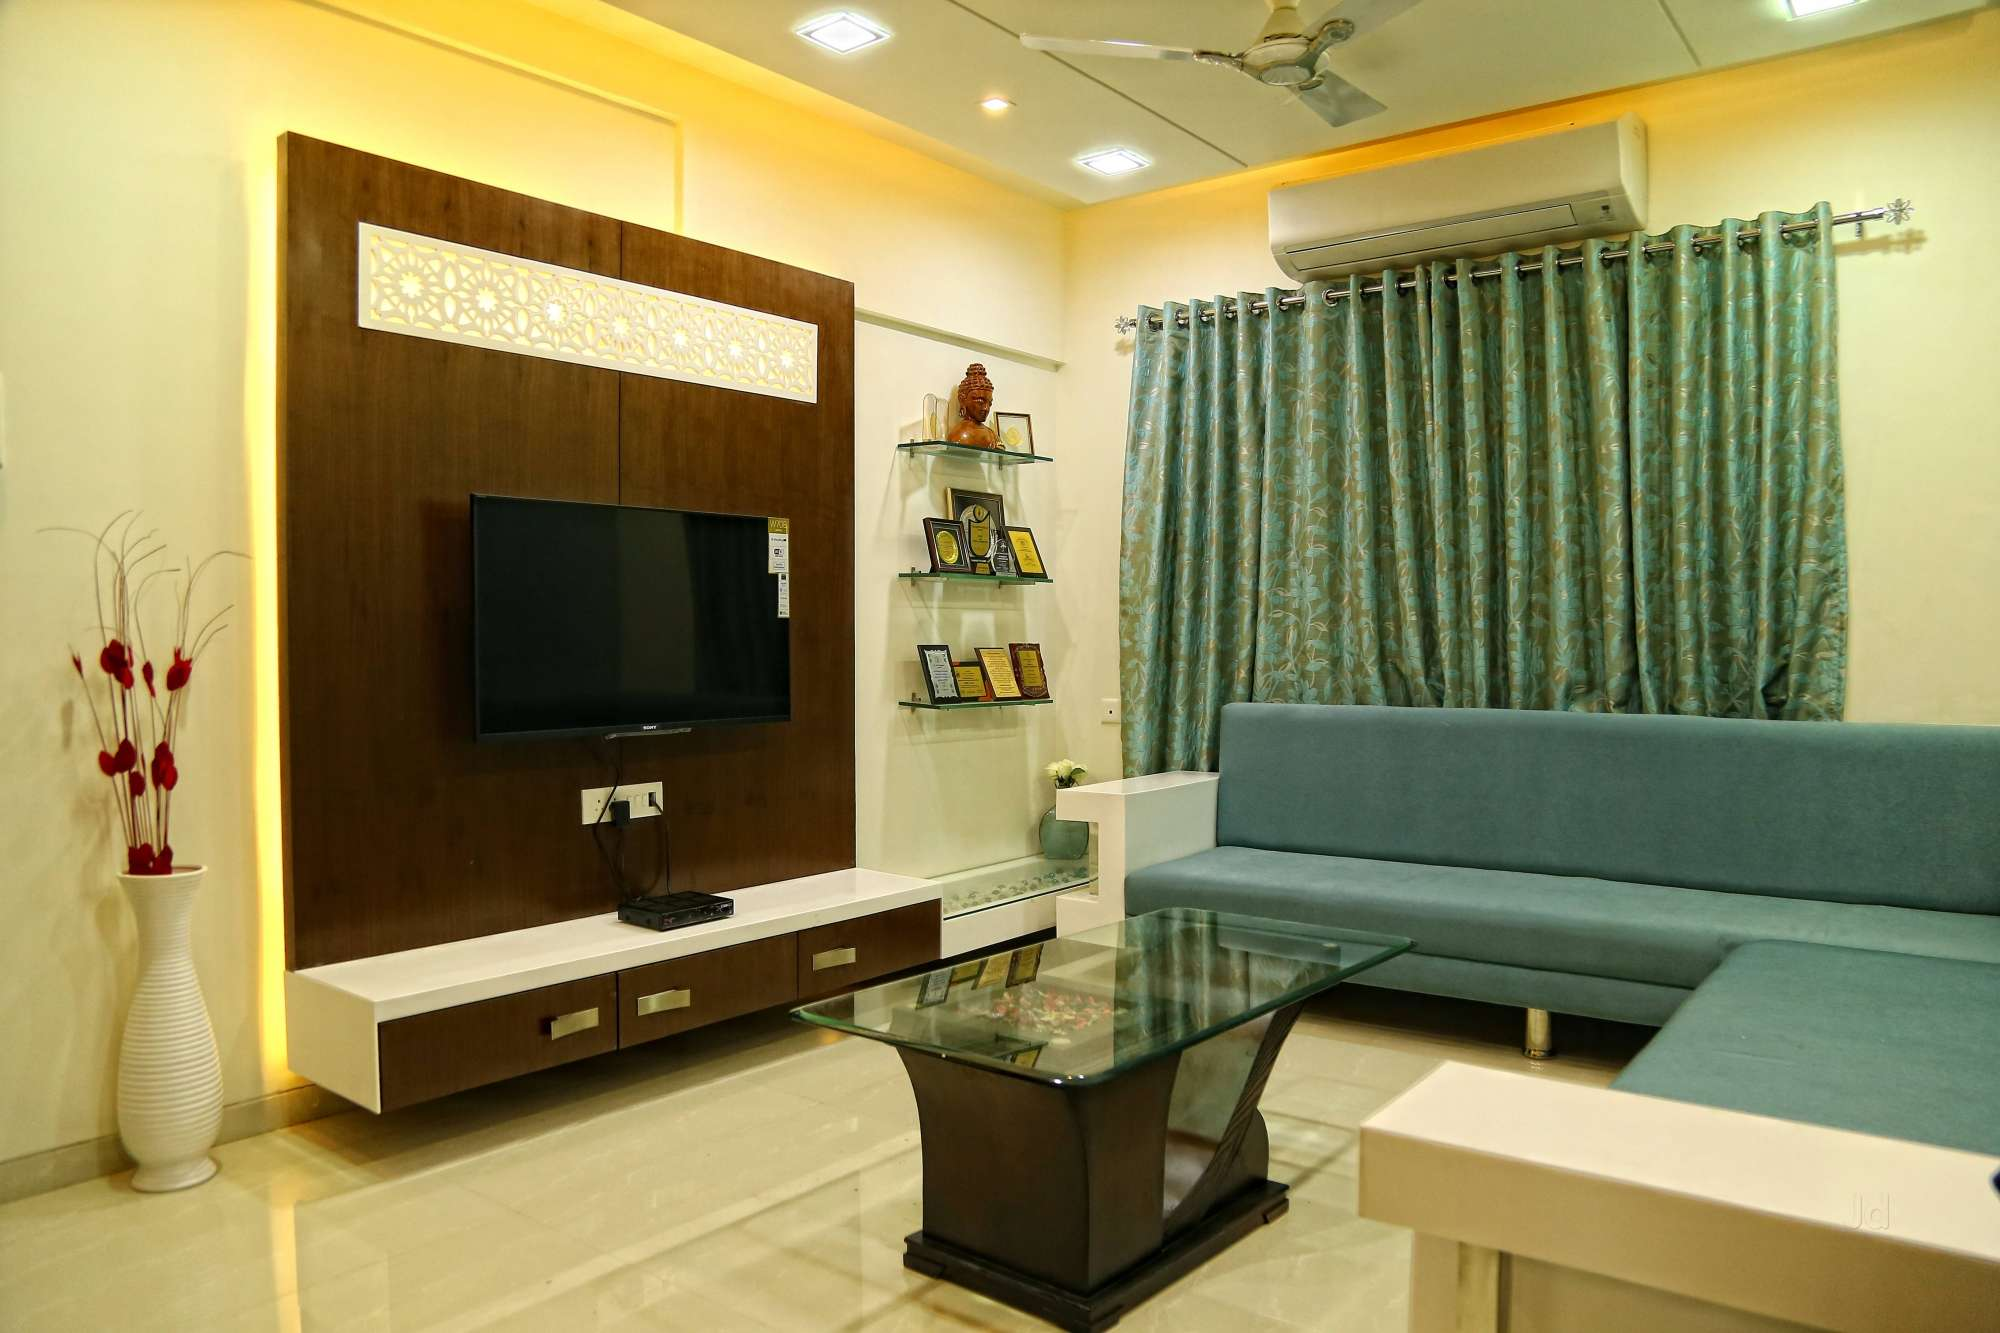 360 Degree Design Photos Byramji Town Nagpur Pictures Images Gallery